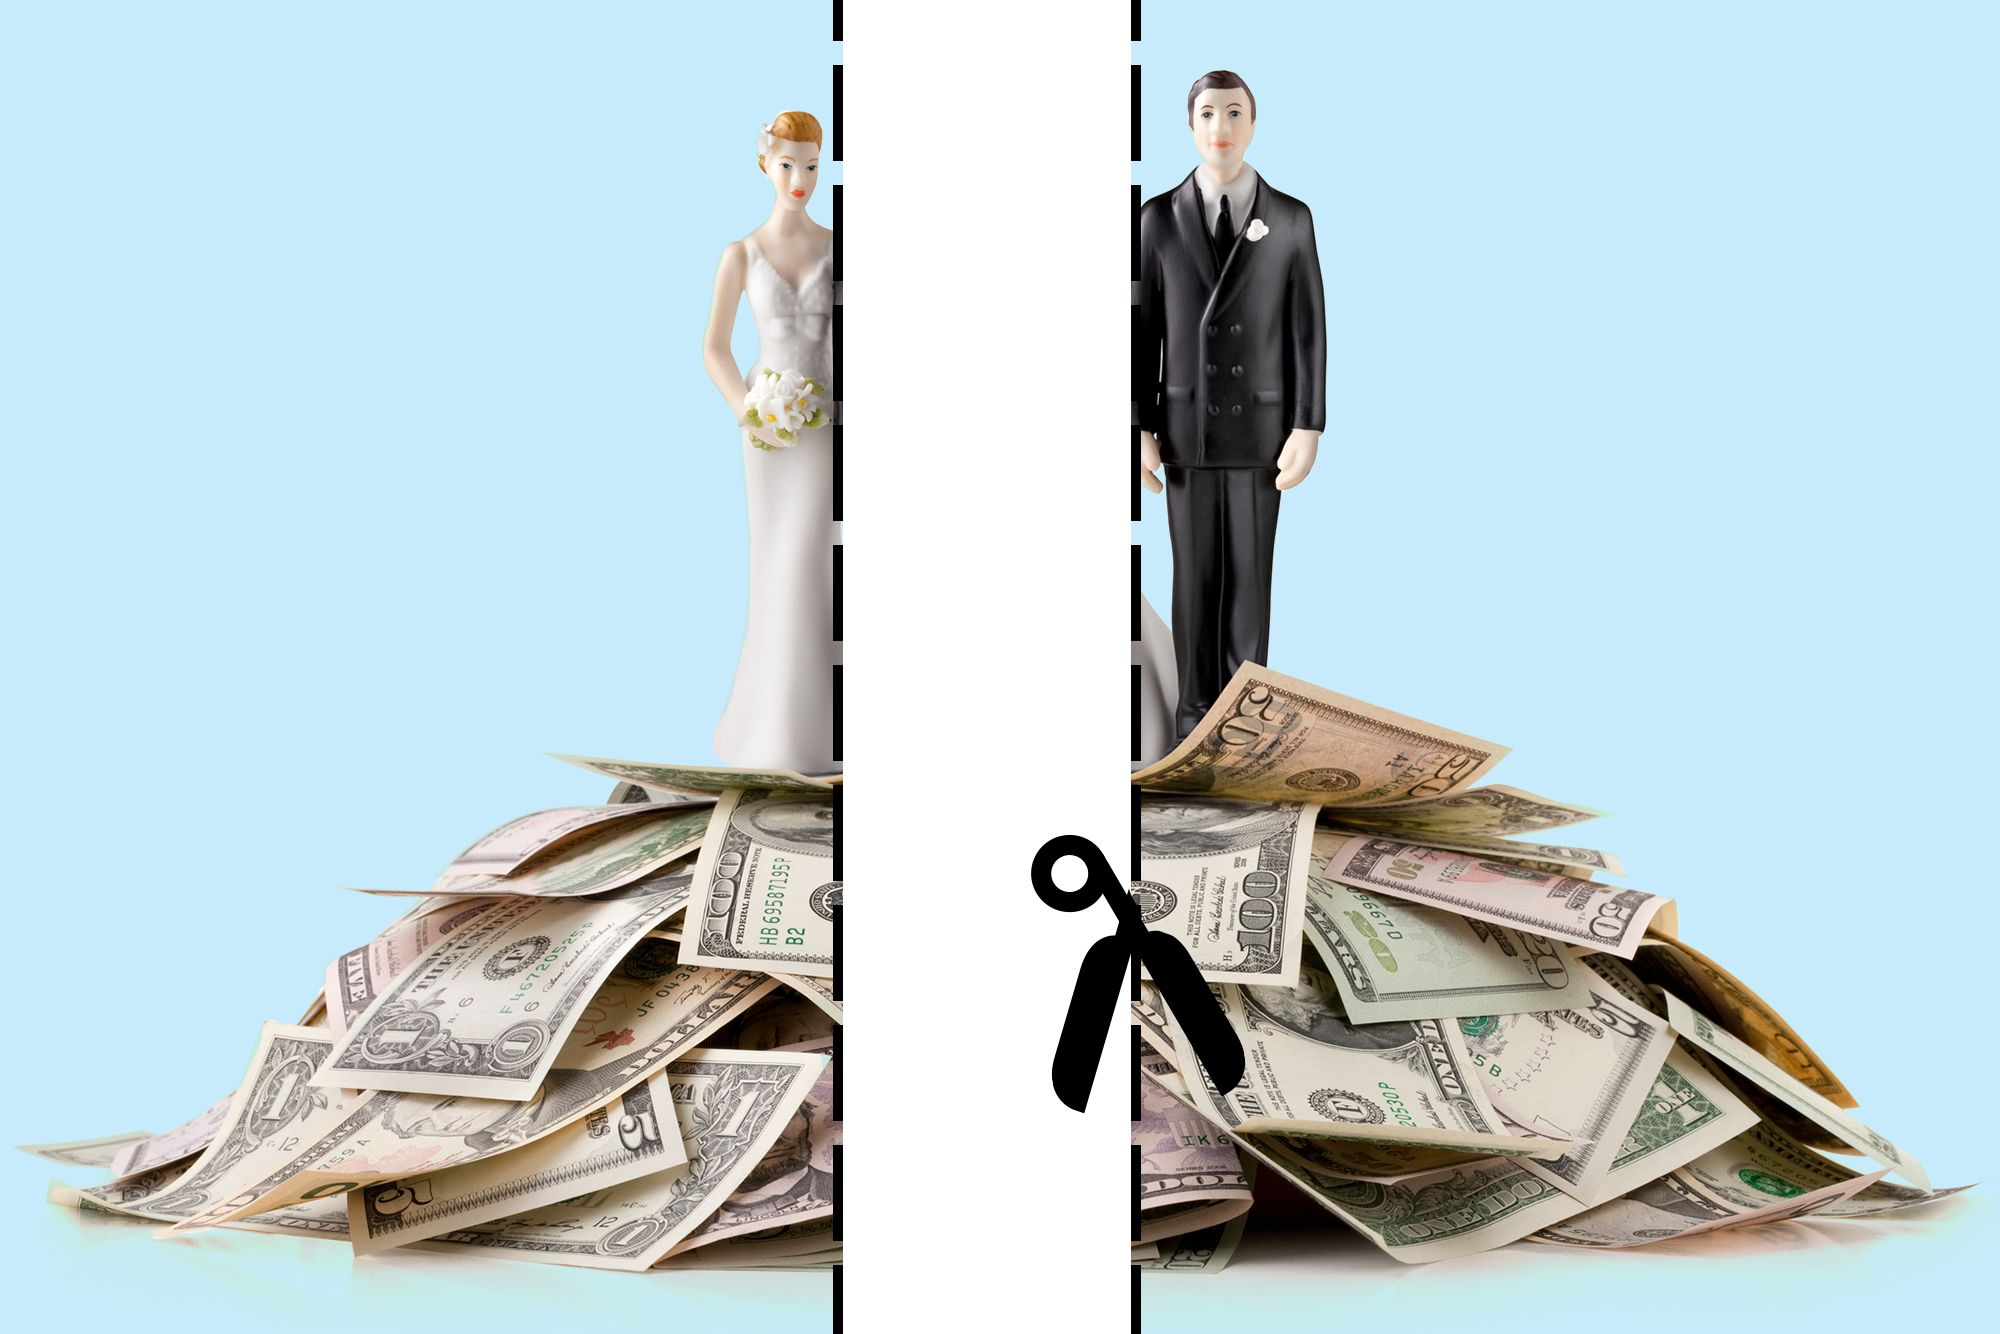 A divorcing couple standing on a pile of money